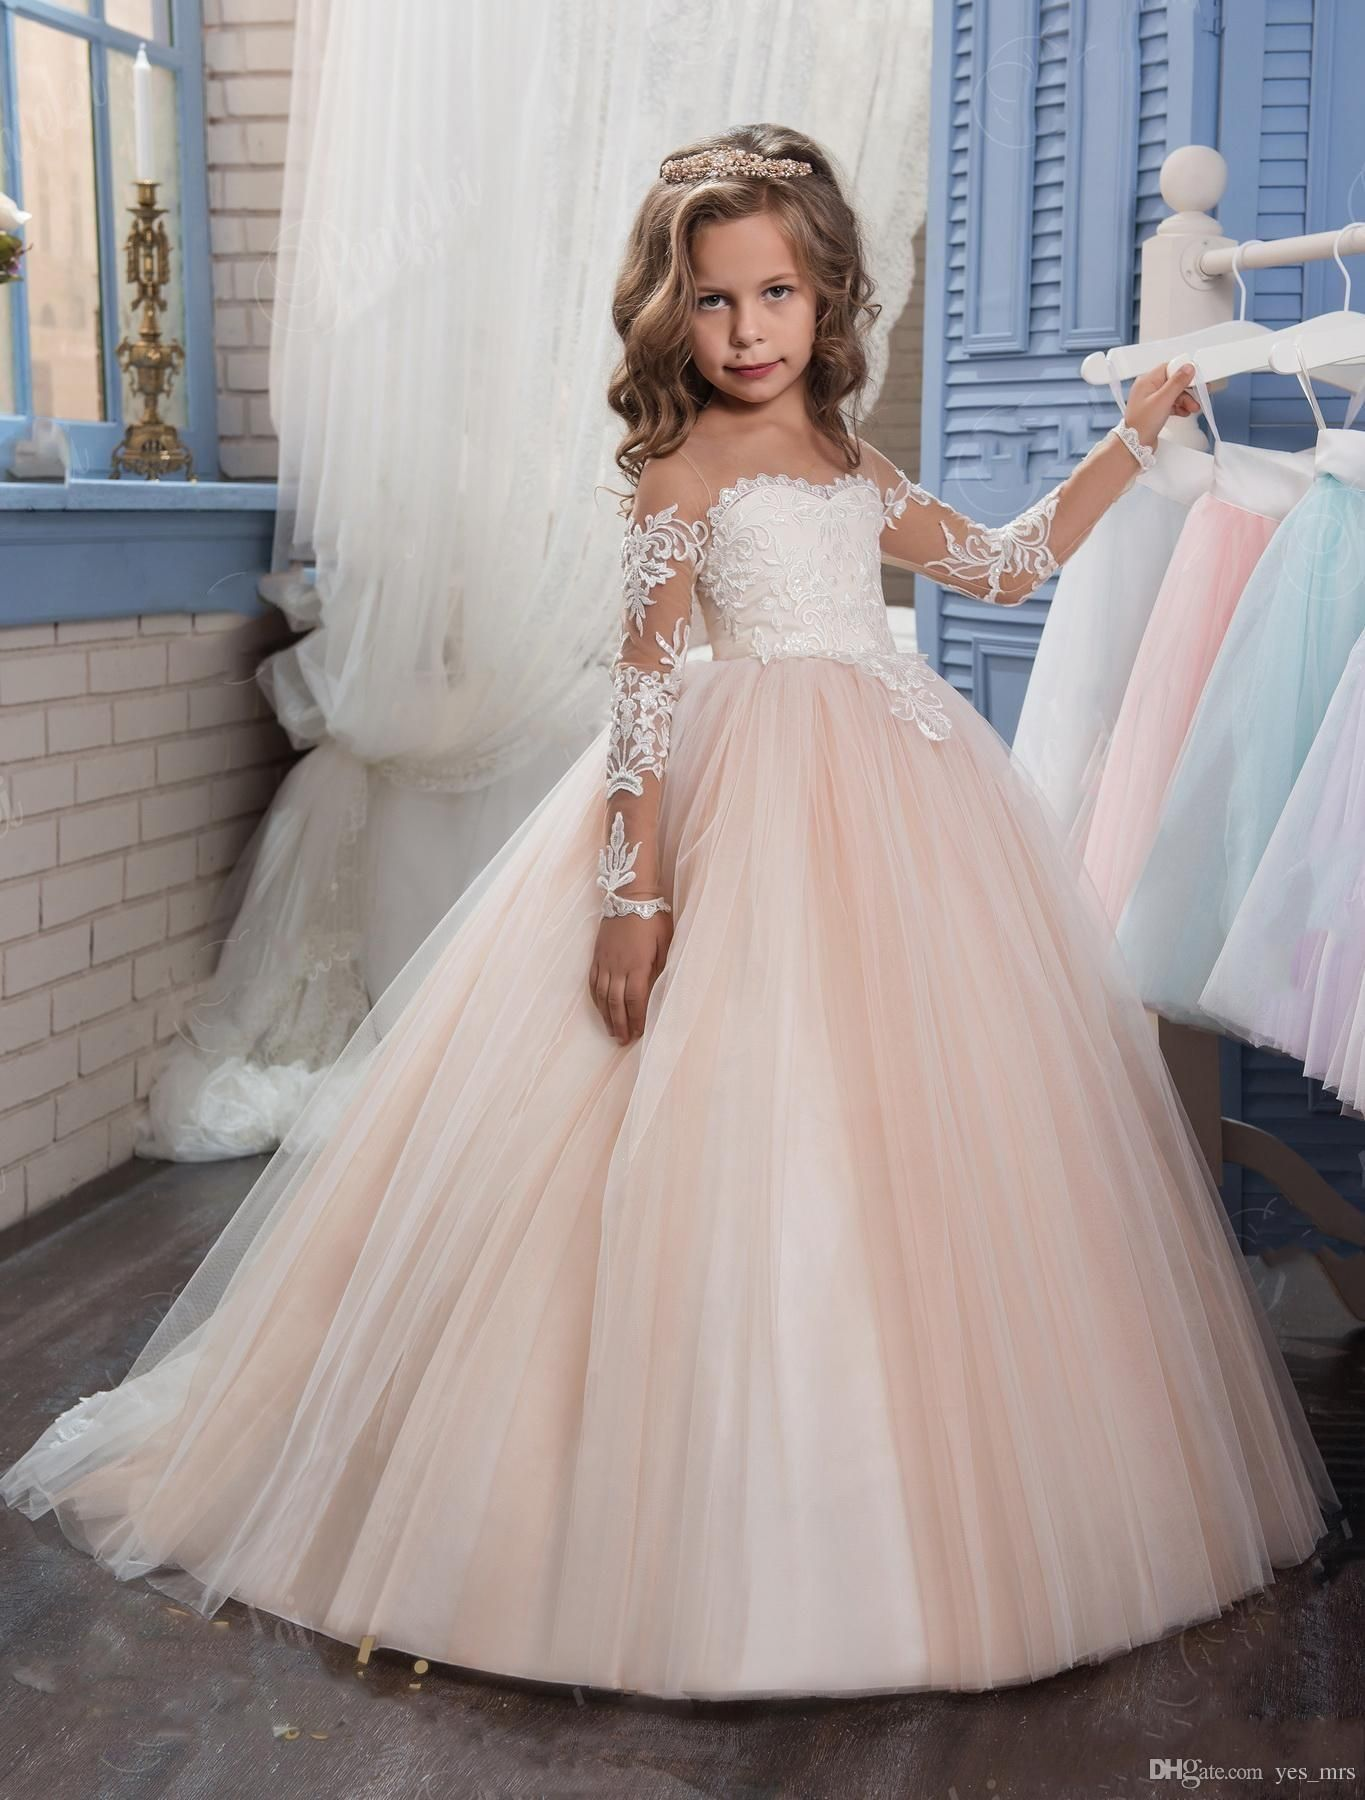 2017 new cheap flower girls dresses for weddings jewel neck long 2017 new cheap flower girls dresses for weddings jewel neck long sleeves lace blush pink birthday dress children party kids girl ball gowns izmirmasajfo